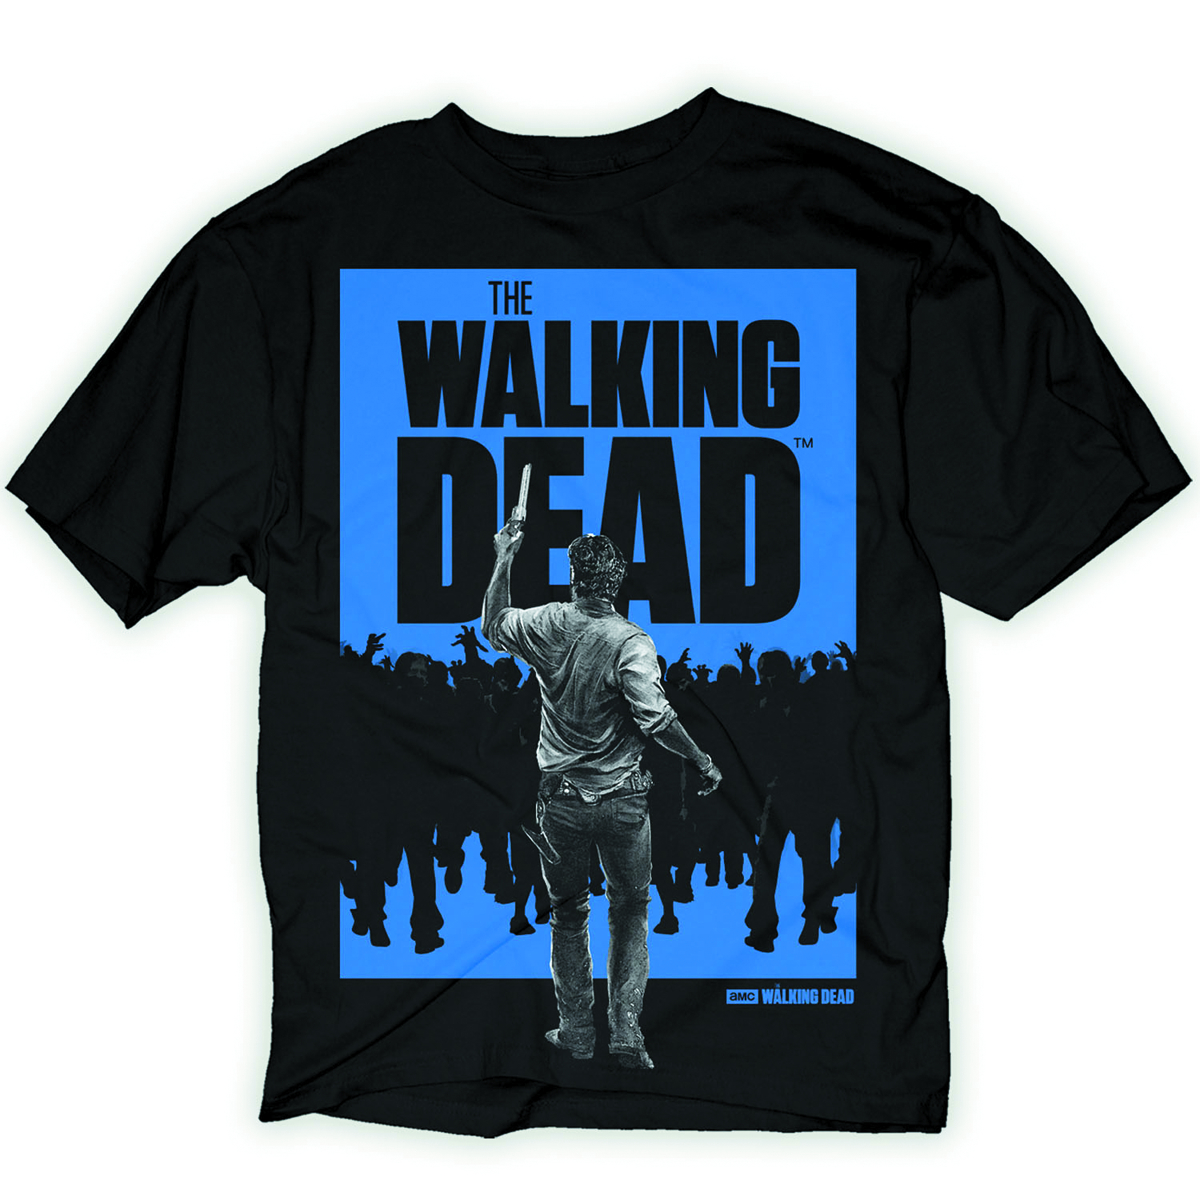 WALKING DEAD RICK WALKER PX BLK T/S XXL